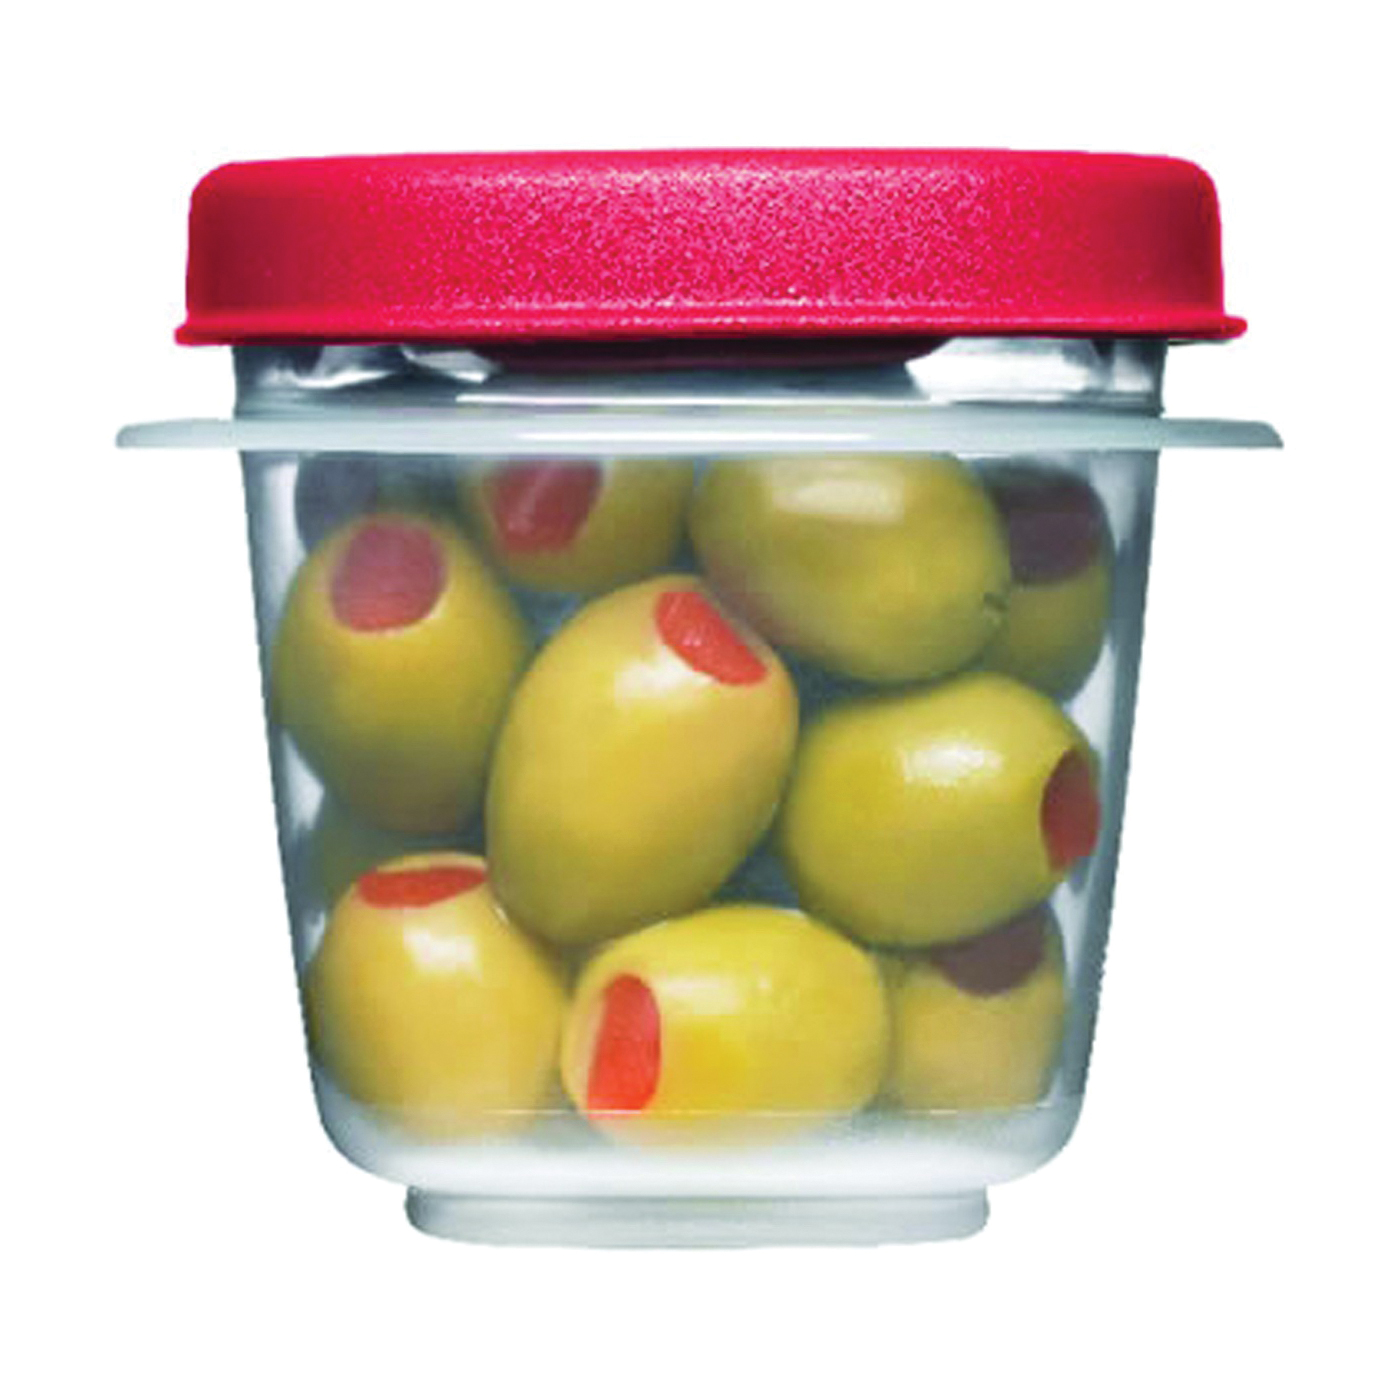 Picture of Rubbermaid 1776477 Food Storage Container, 0.5 Cup Capacity, Plastic, Clear, 3.2 in L, 6.4 in W, 2.6 in H